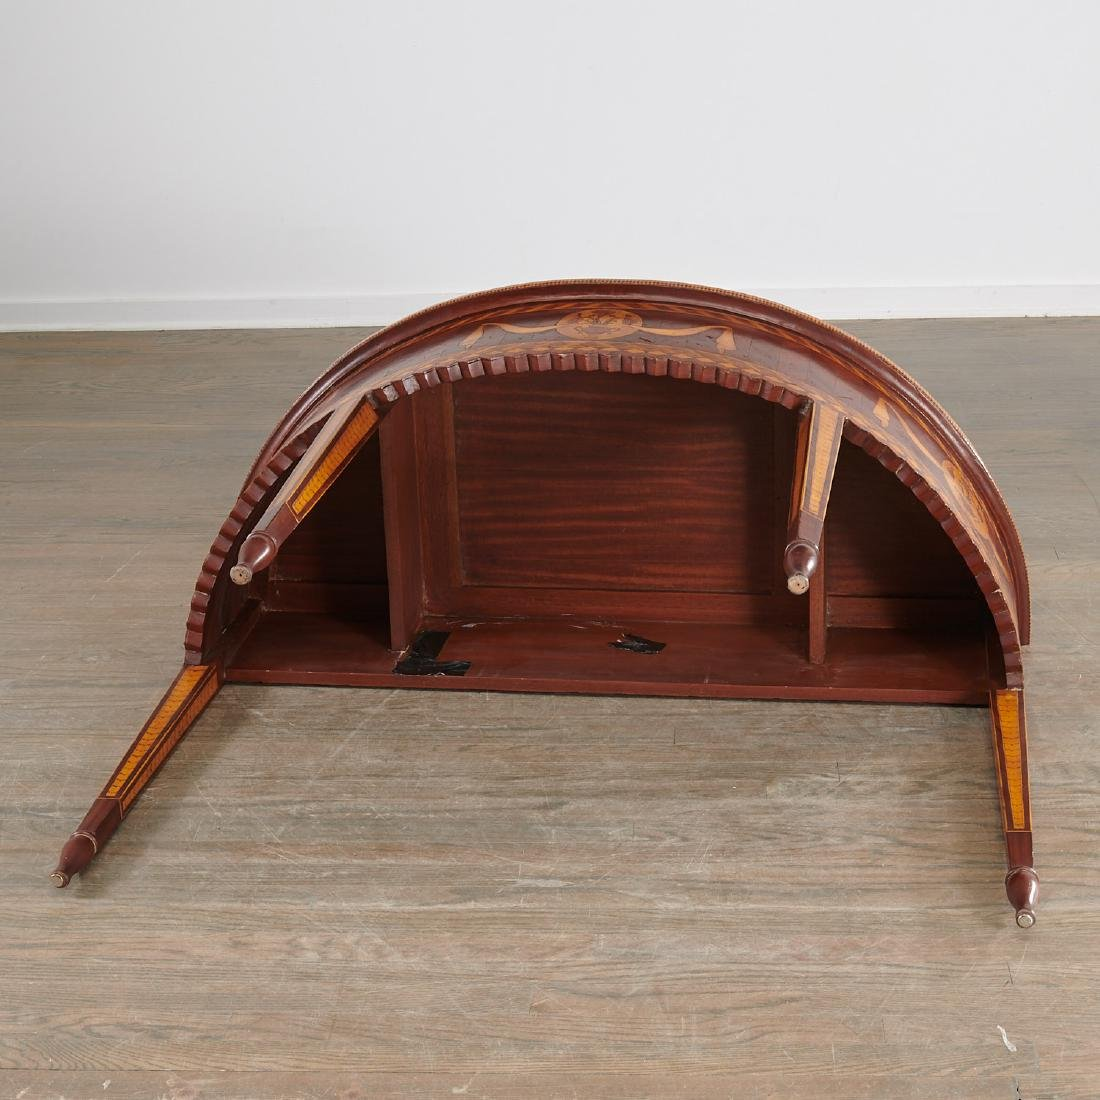 Alfonso Marina parquetry demilune table - 10